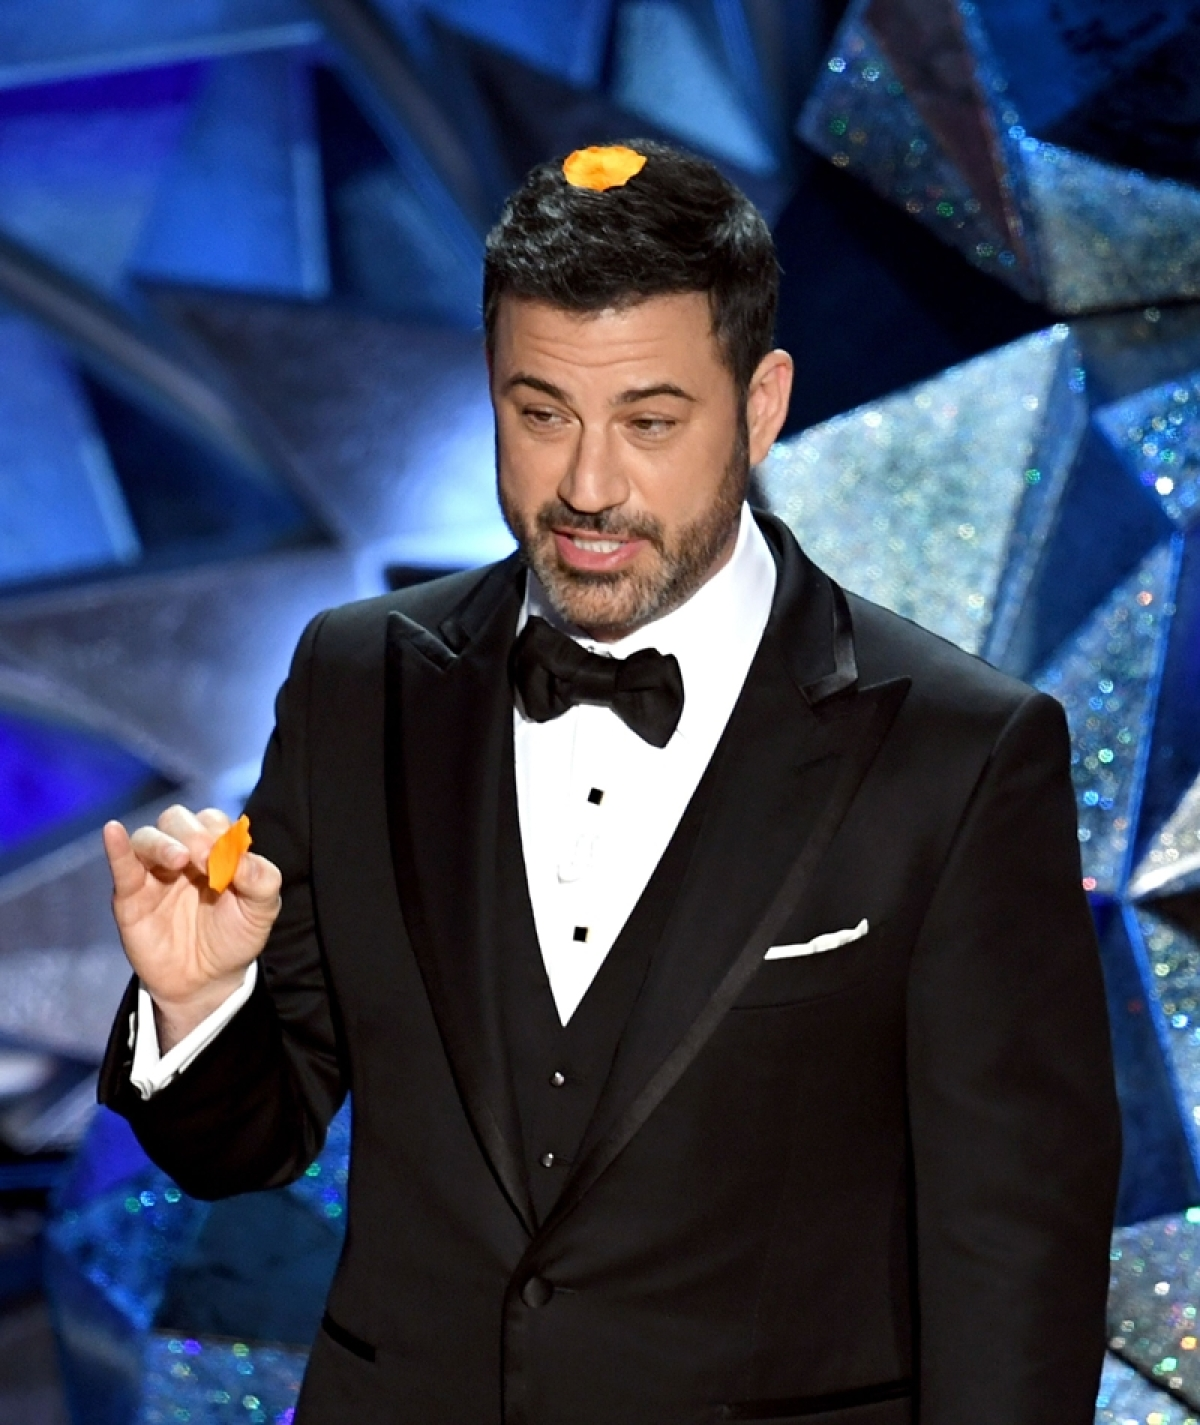 Oscars 2018: Jimmy Kimmel addresses harassment in 90th Academy Awards' opening monologue